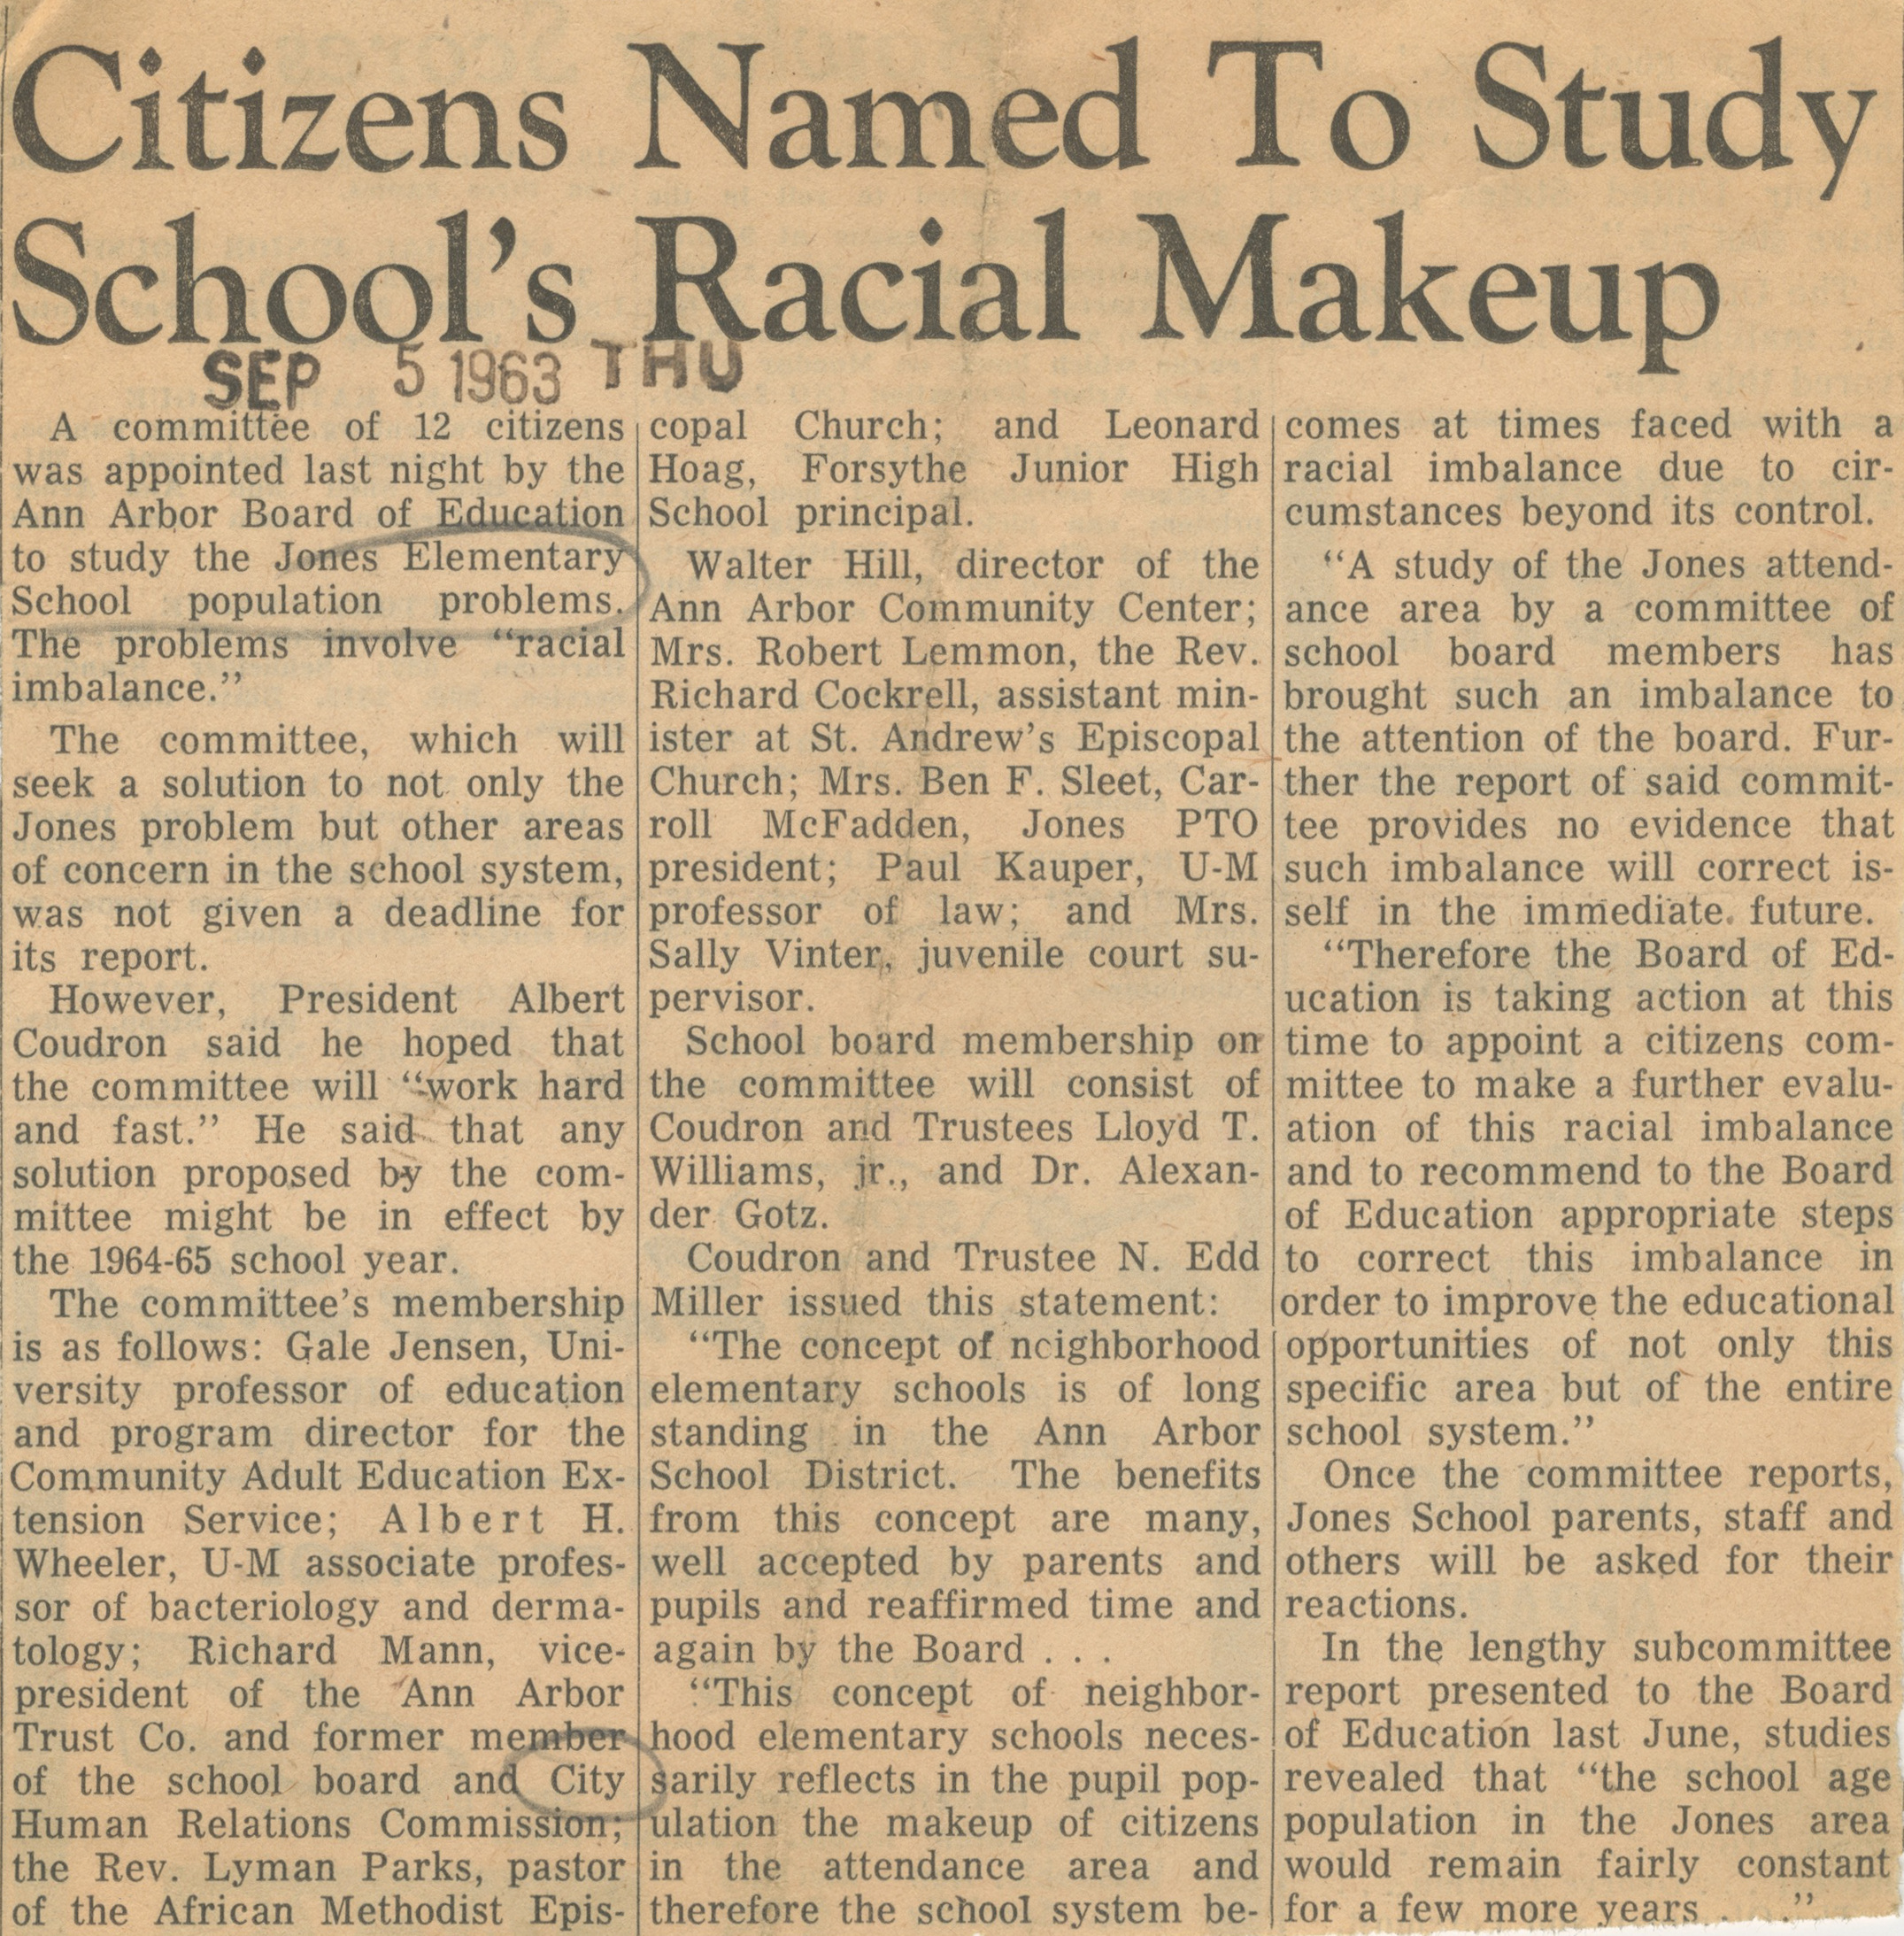 Citizens Named To Study School's Racial Makeup image